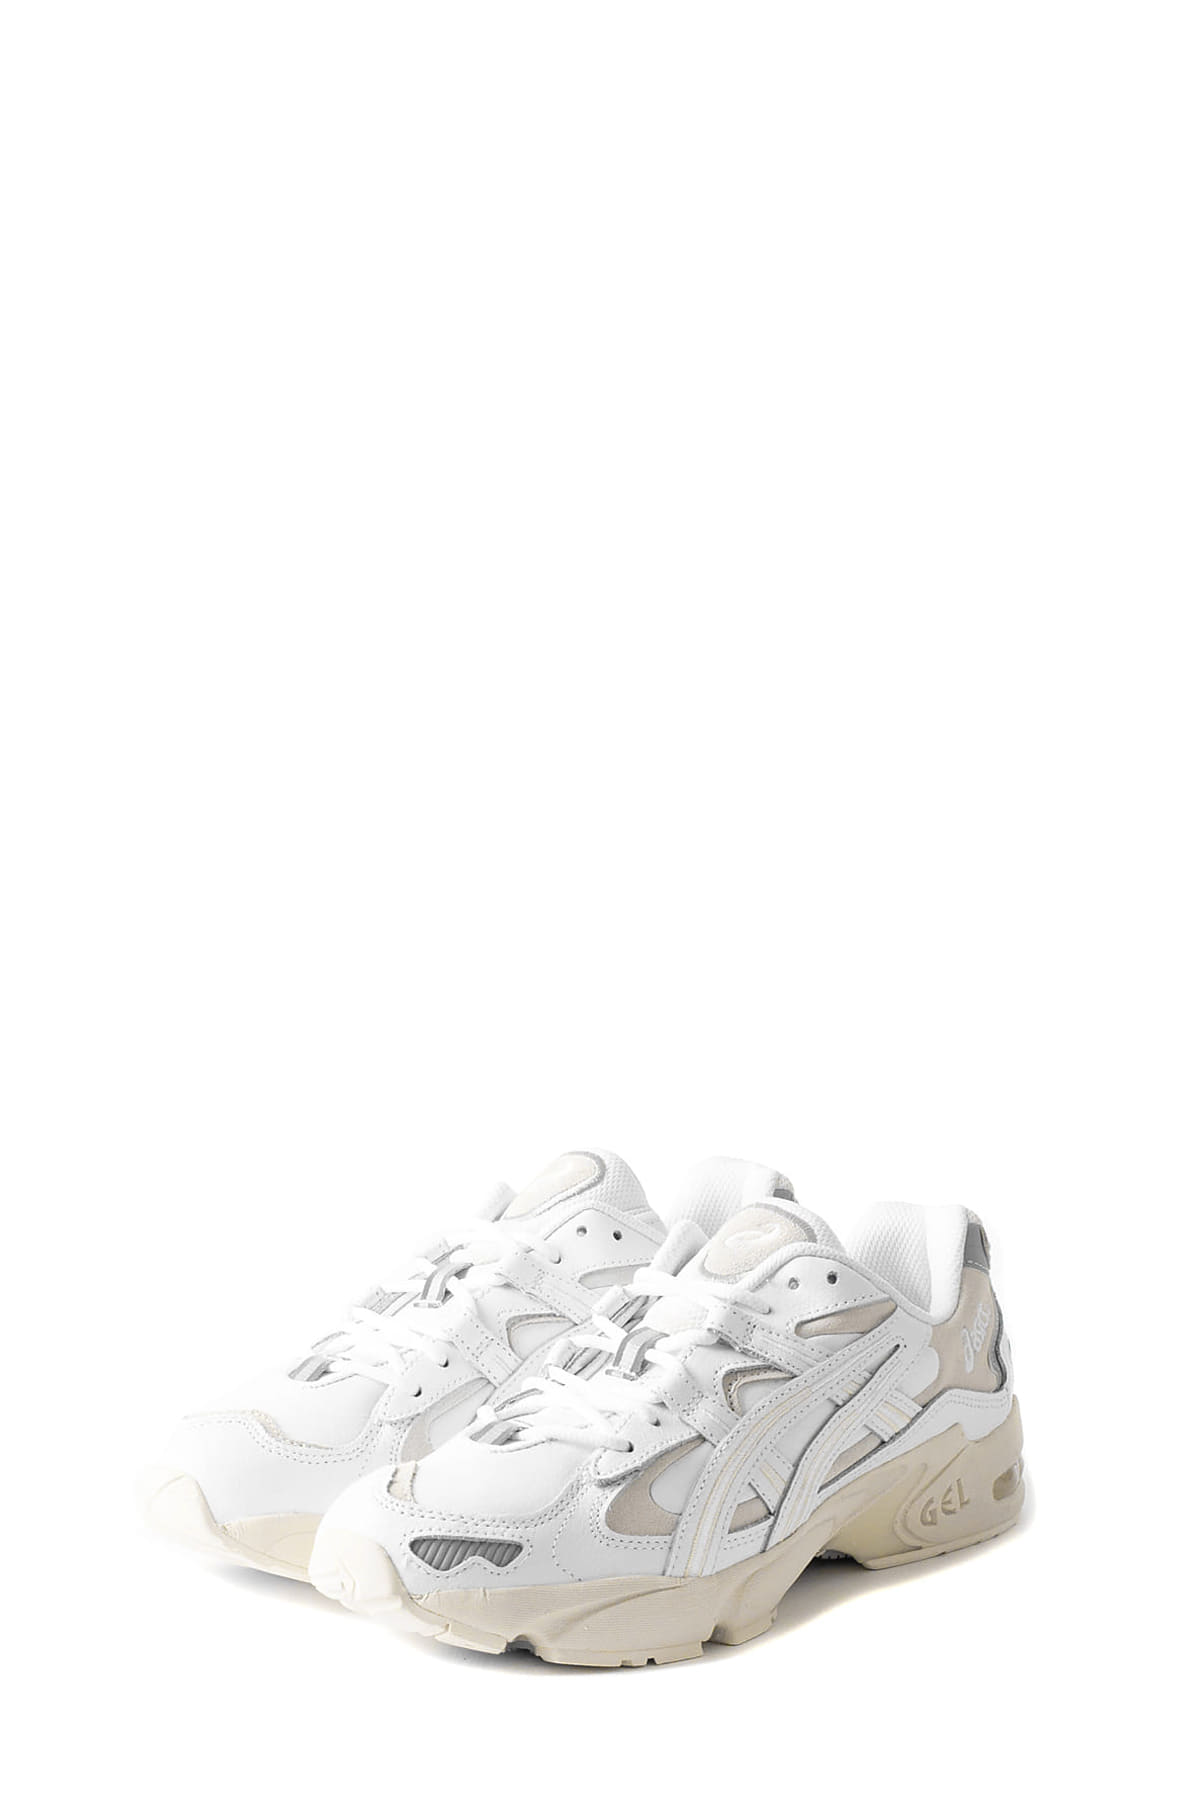 asics tiger : Gel-Kayano 5 OG (White / White)